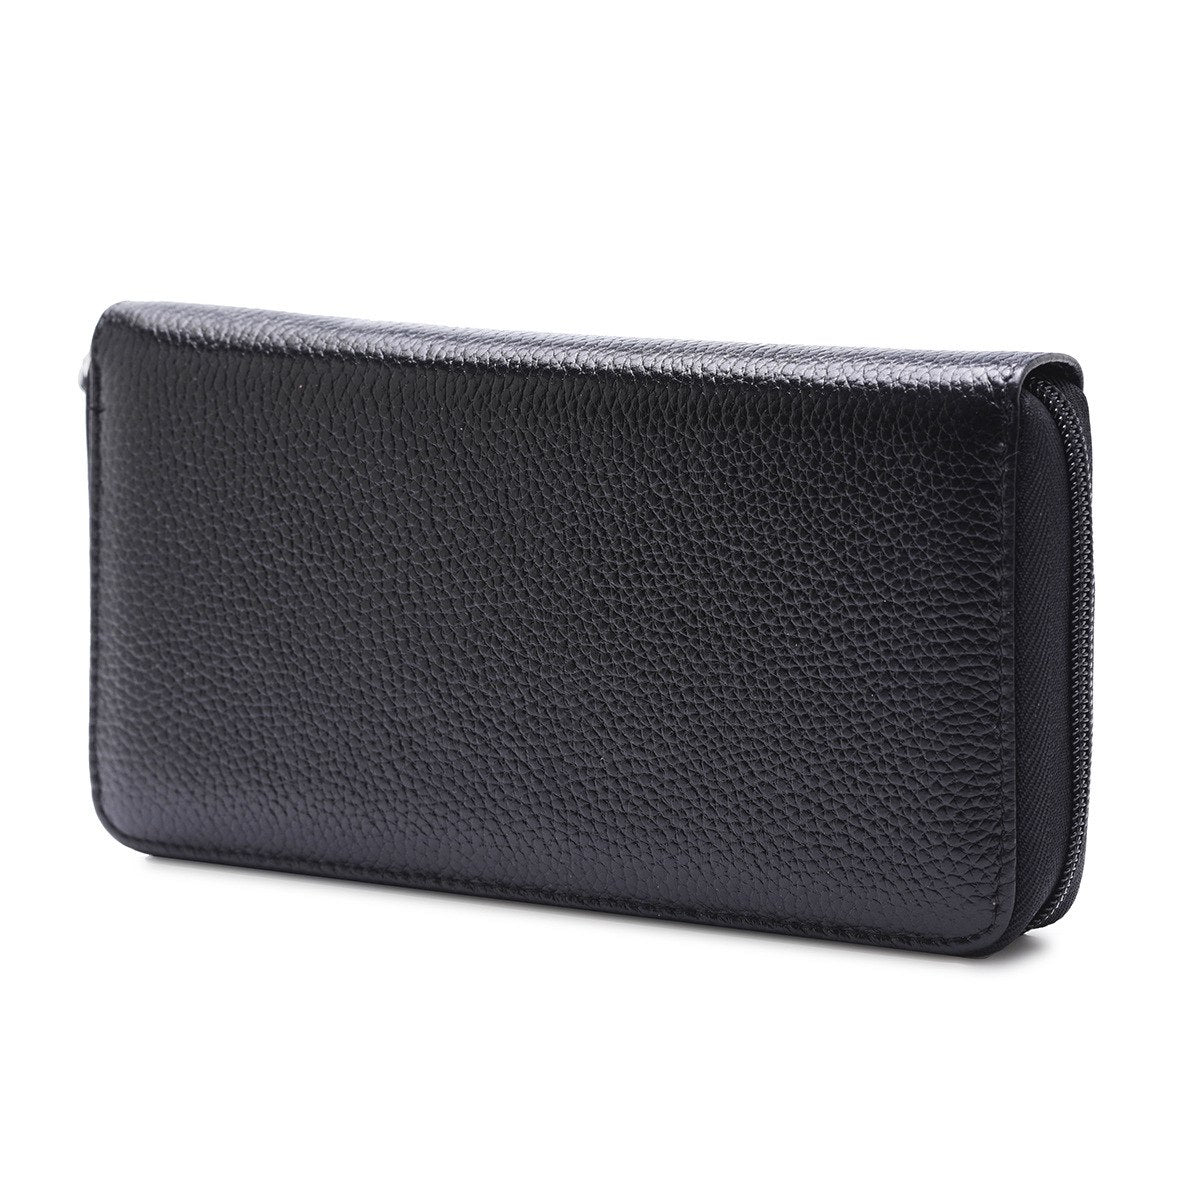 Women Card Holders Wallet Genuine Leather Male Business RFID Cards